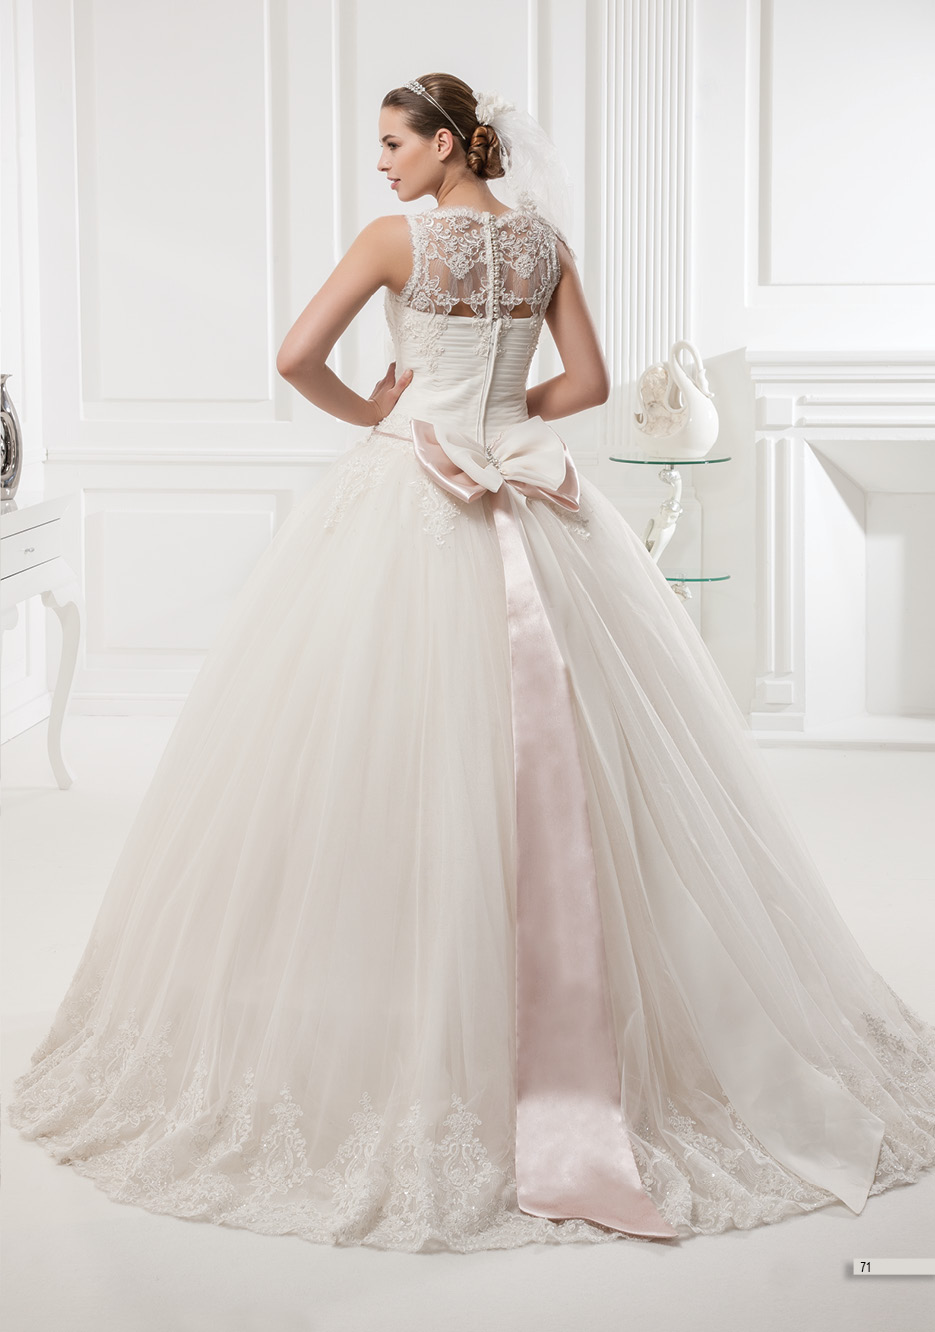 Madam Burcu Wedding Dresses UK